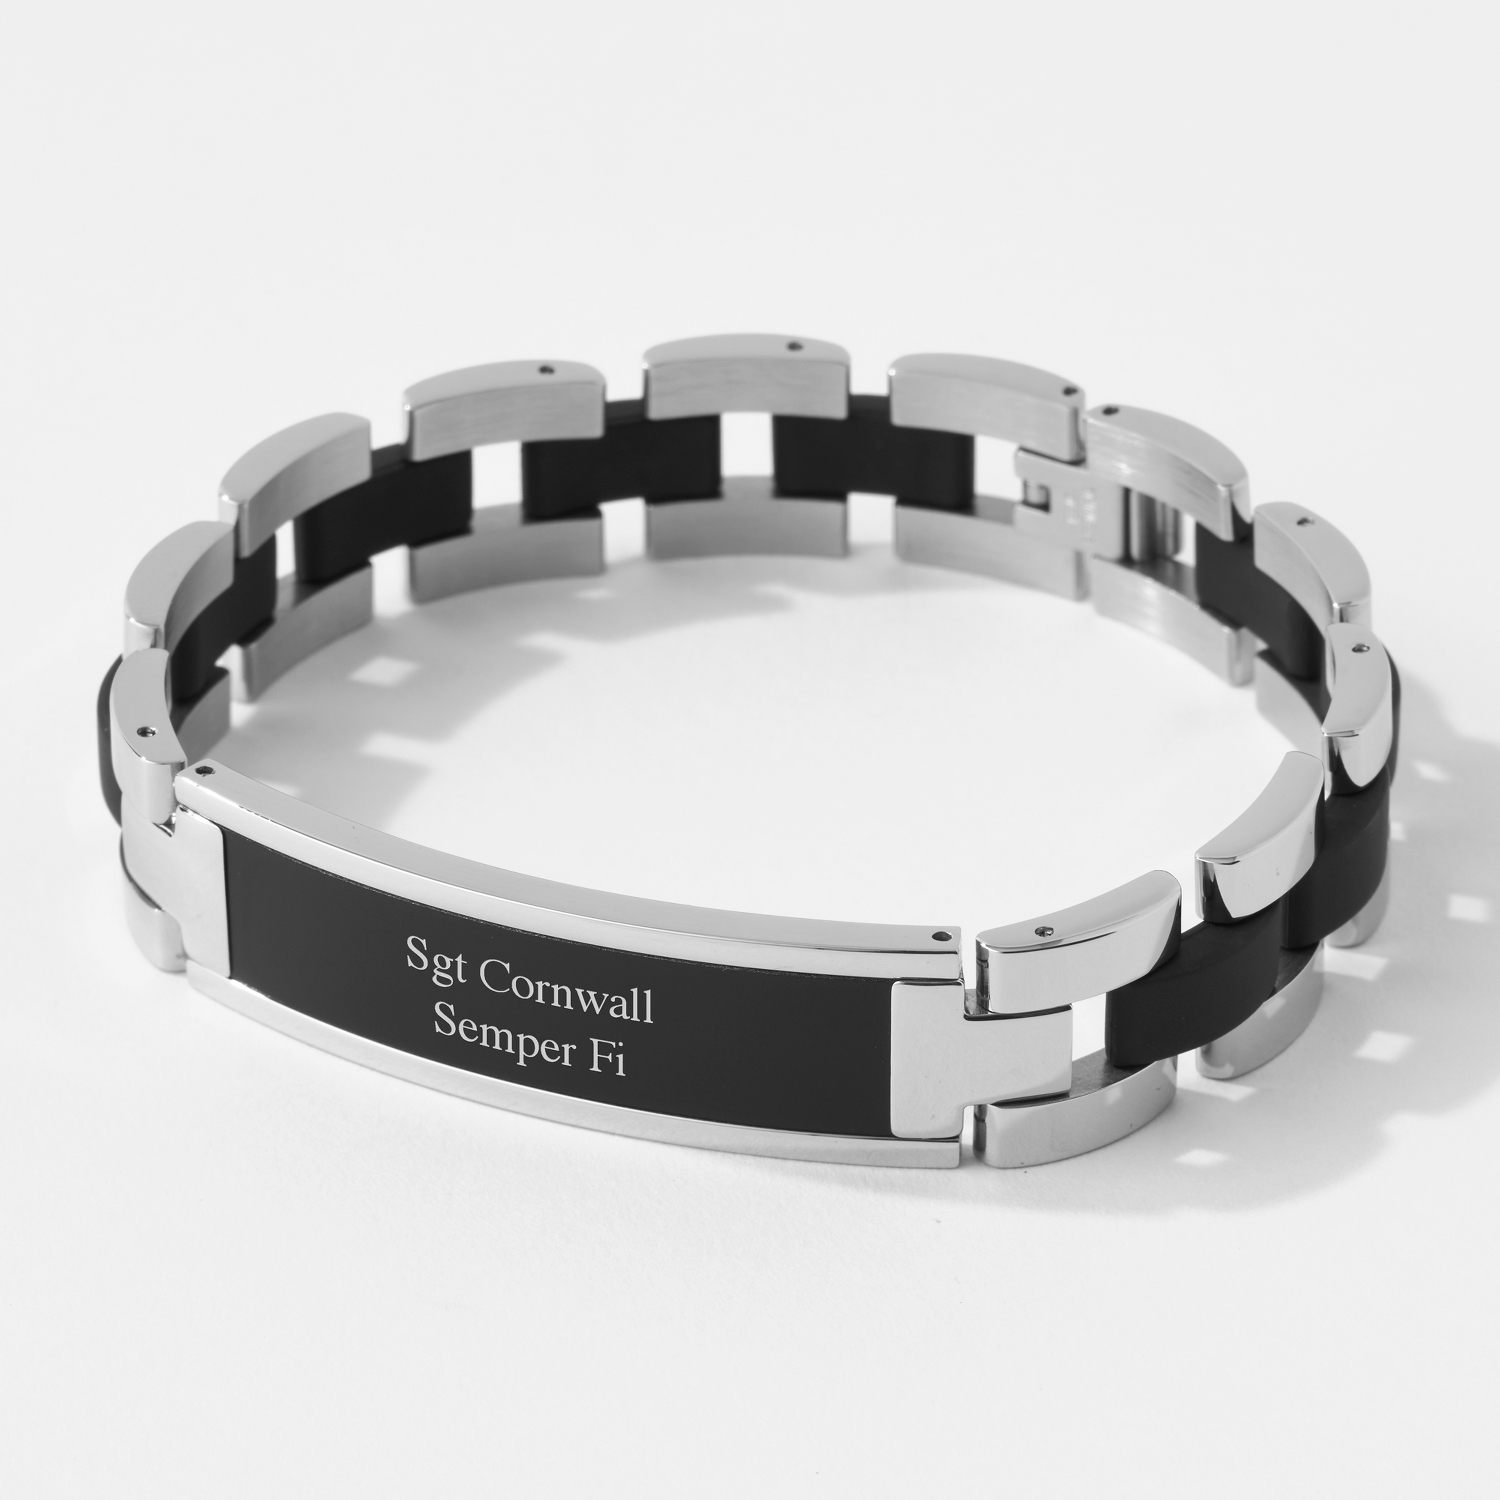 products road bracelet classic elite information stainless id